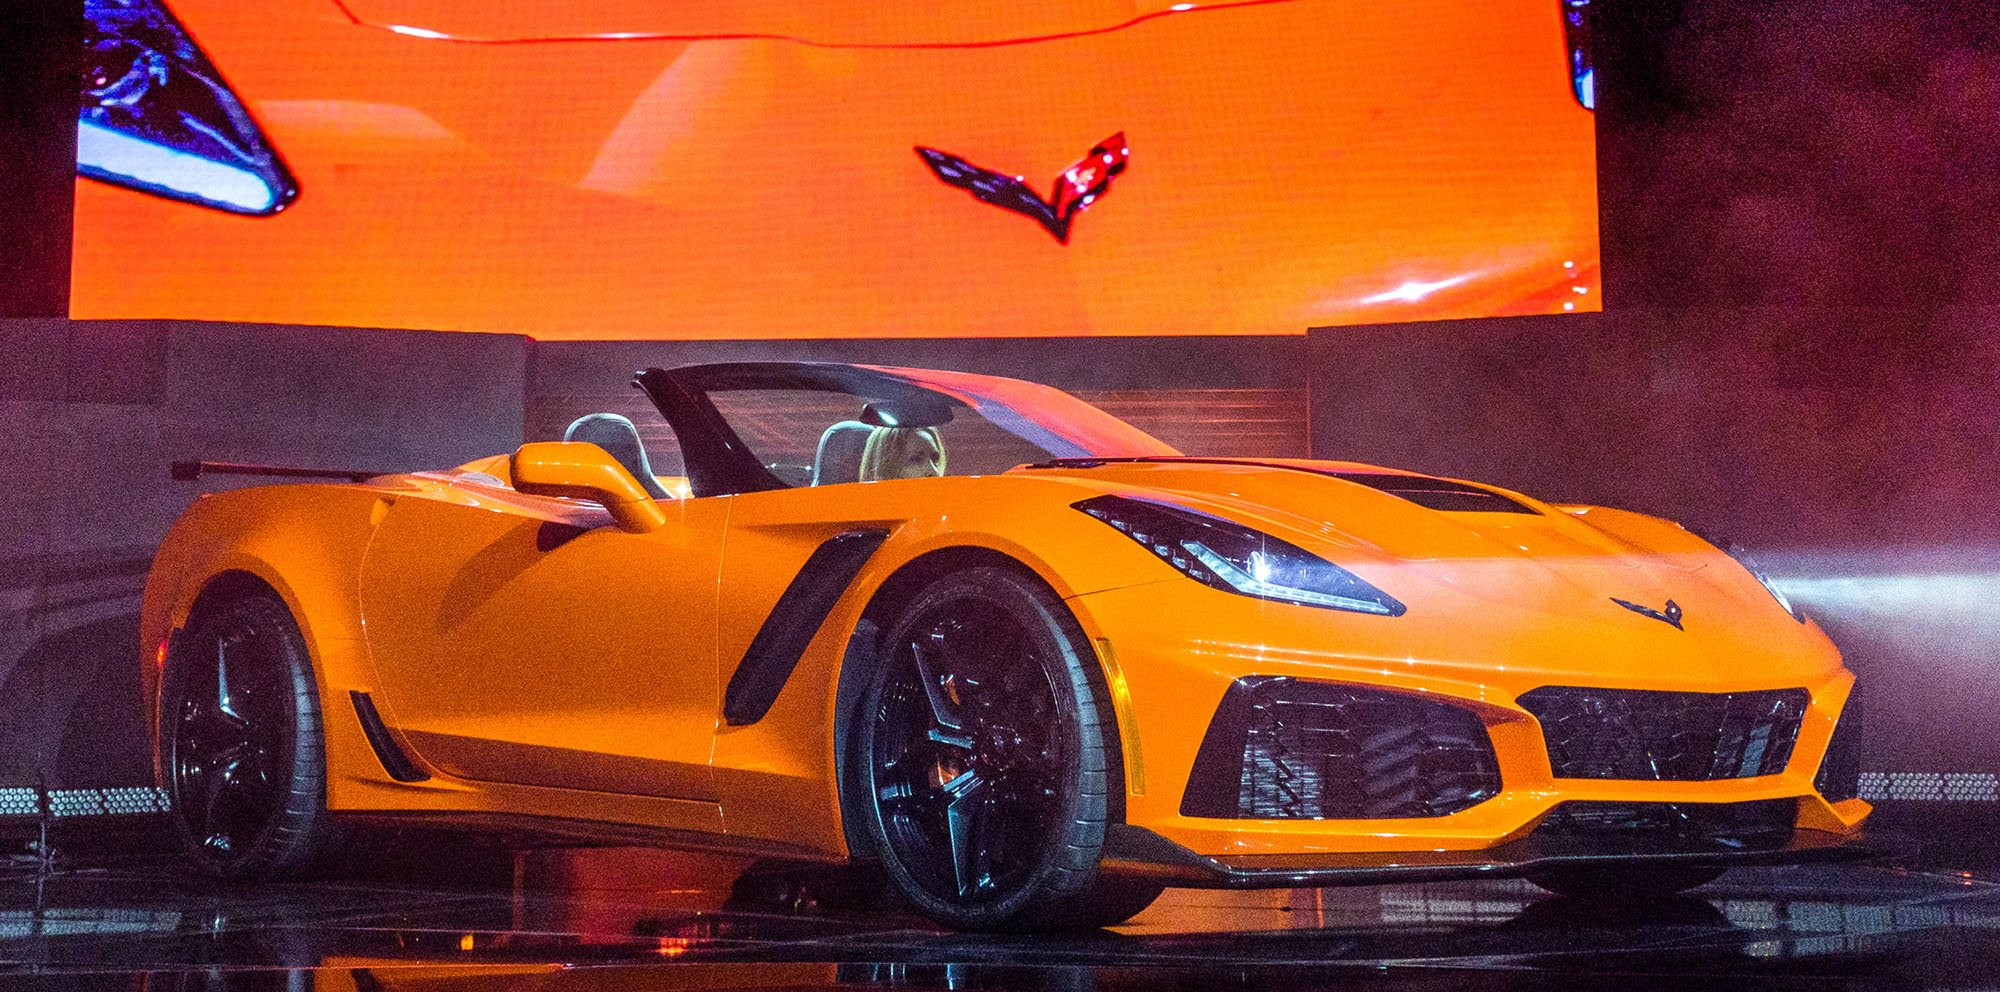 2018 Chevrolet Corvette Zr1 Convertible Unveiled Photos